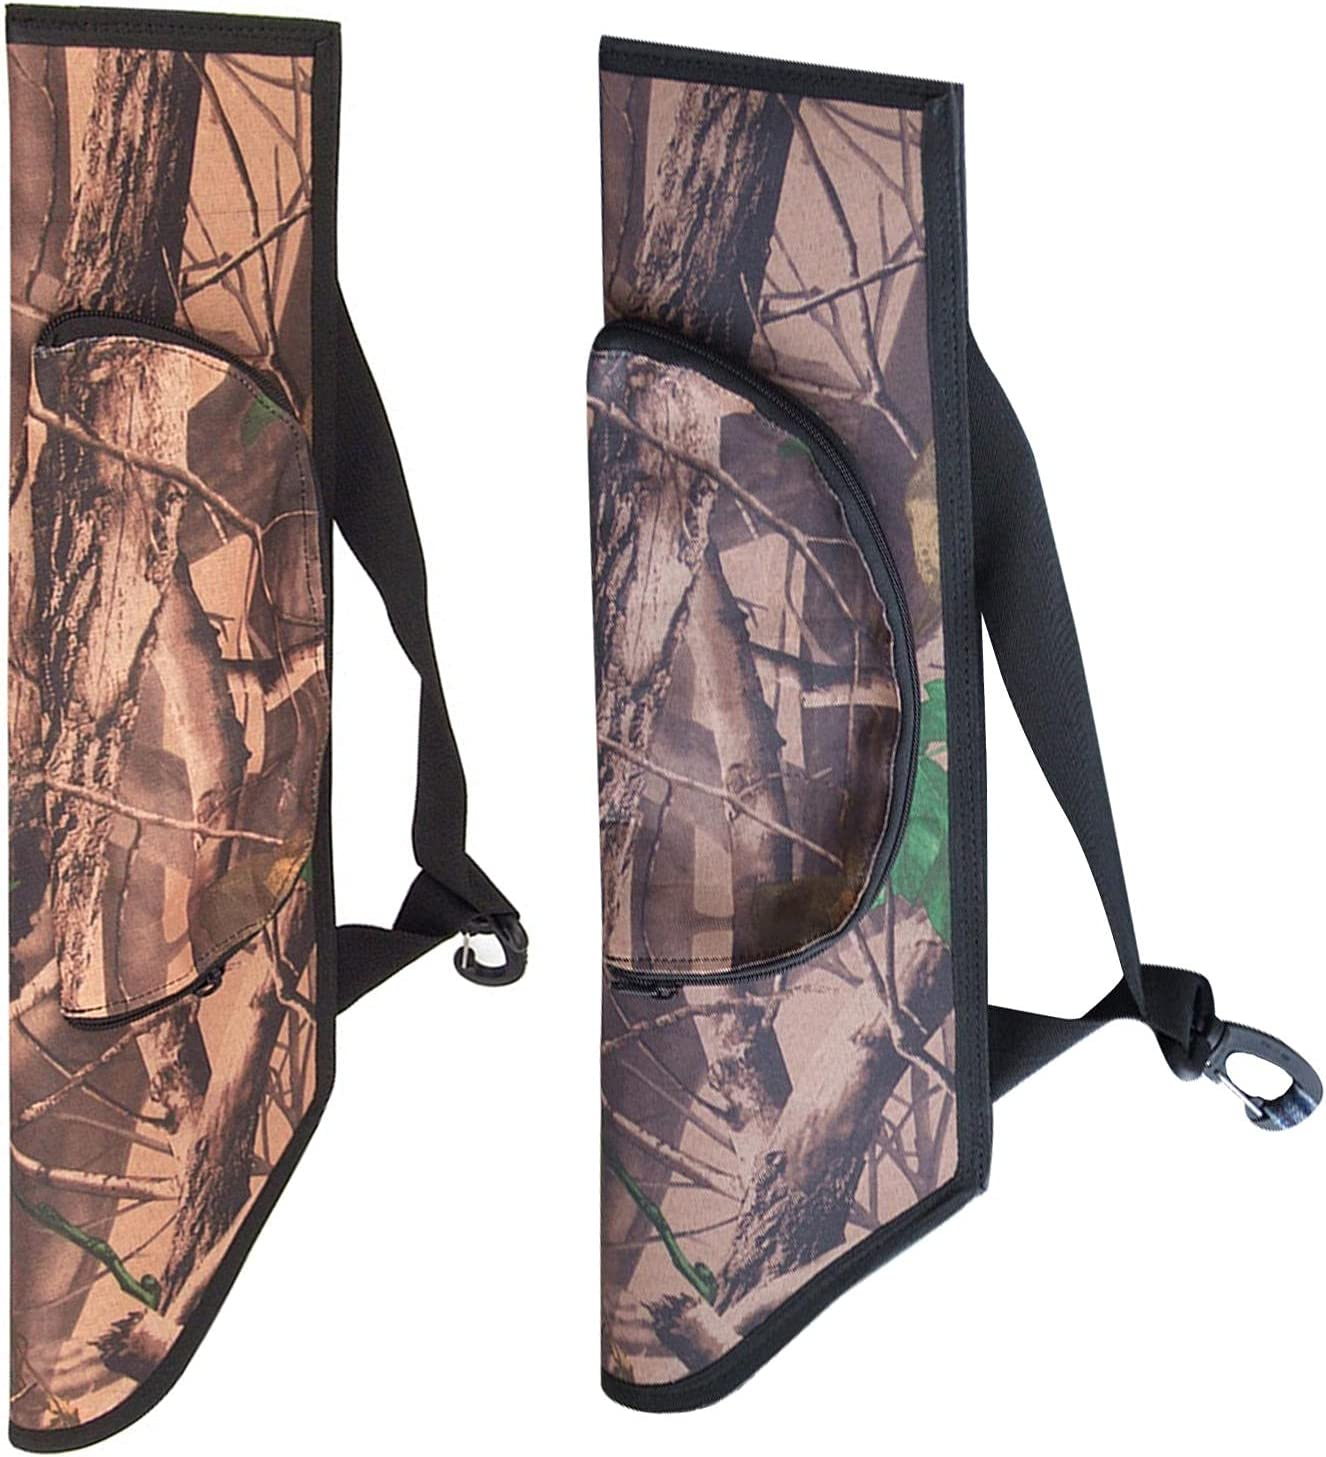 Dreamseeker Camouflage Discount is also underway Clearance SALE! Limited time! Competitive Shooting Outdoor Shoo Quiver